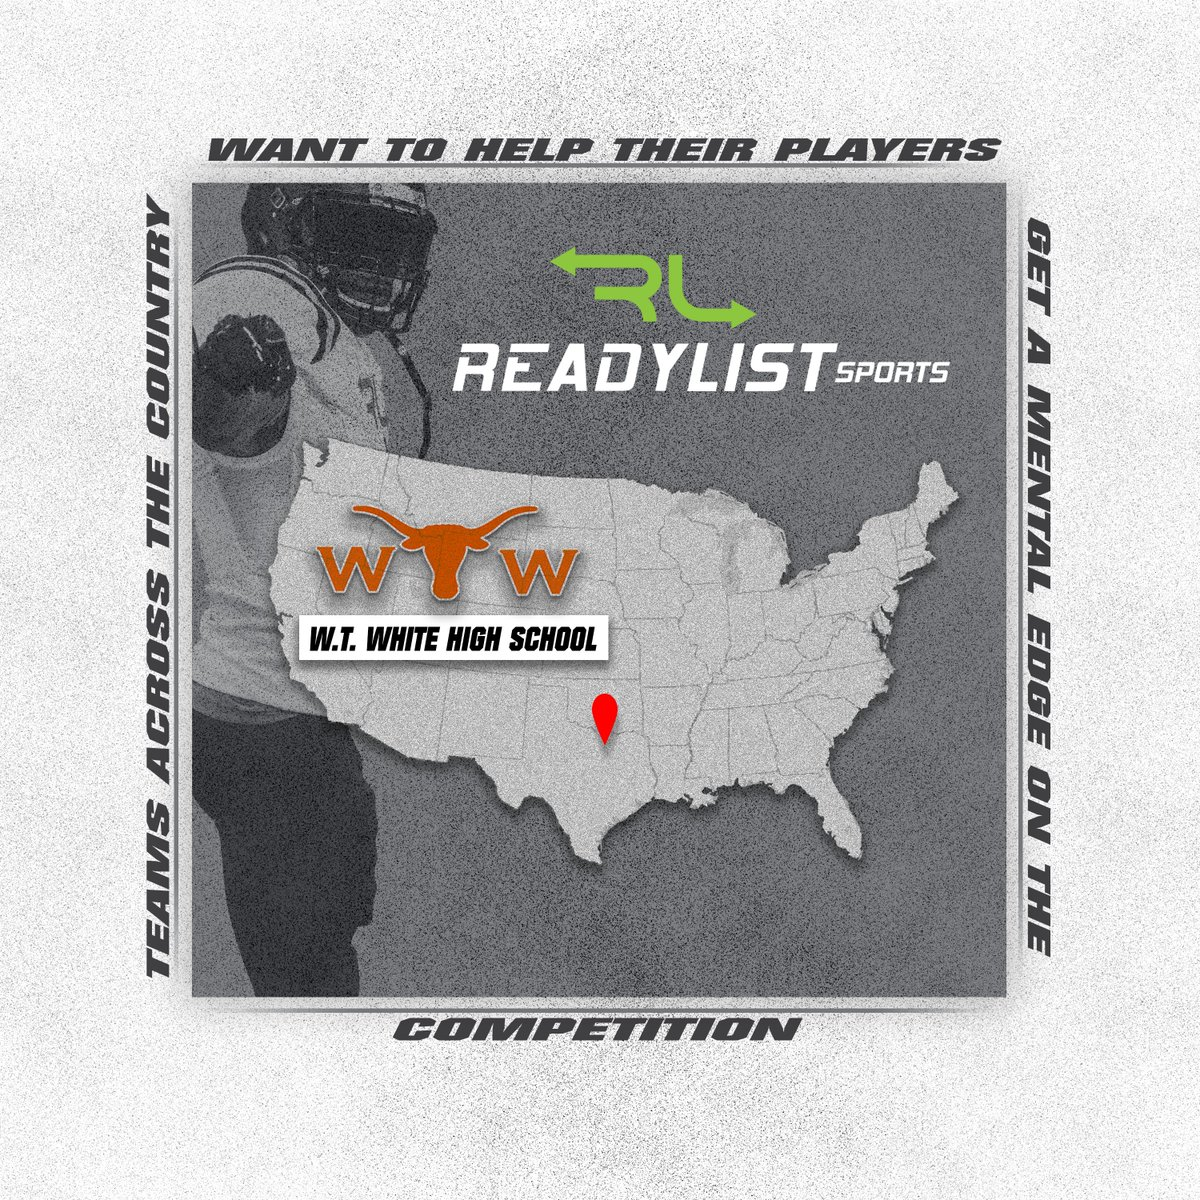 W.T. White High School has joined the ReadyList family. Structuring player learning is huge when it comes to success on the field and we are excited to see how the Longhorns perform this season. #Getinyourplaybook #Football #Learningapp https://t.co/xCDIlpCwgF